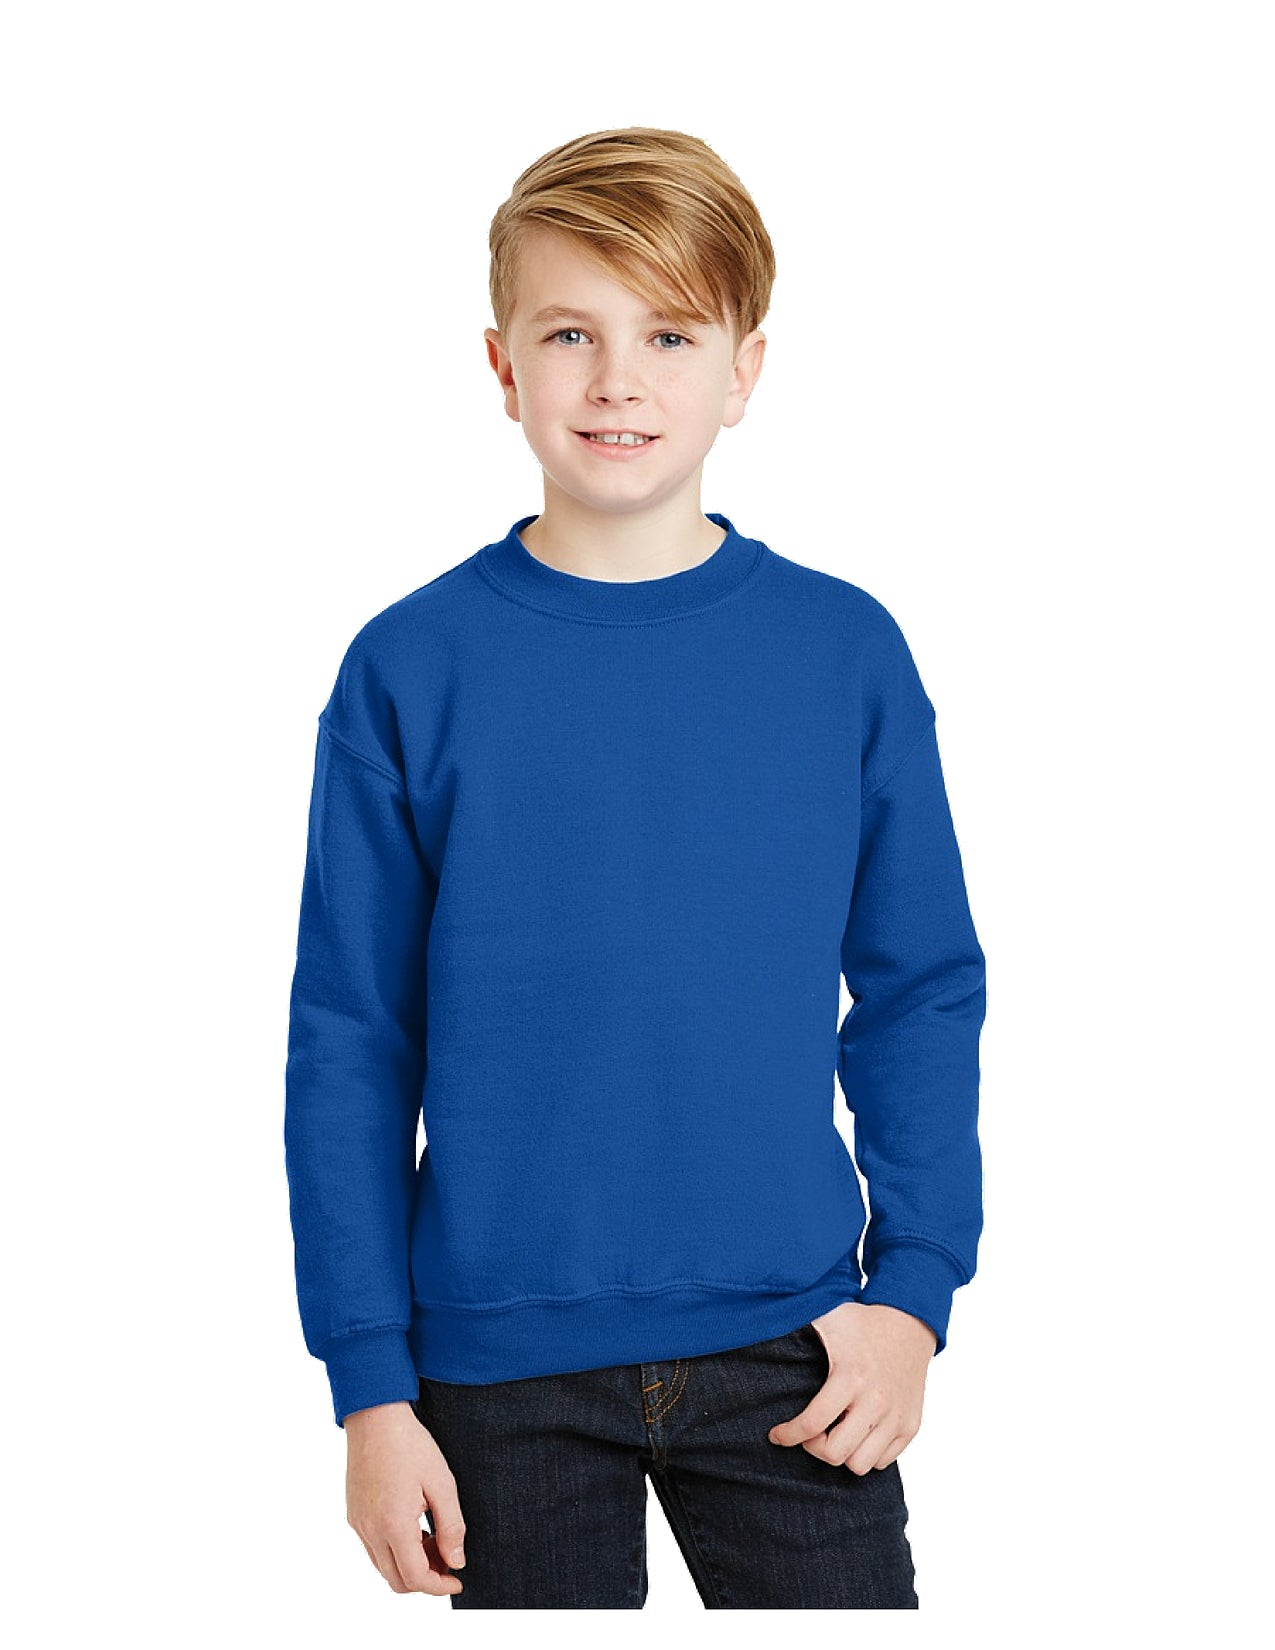 Youth Small Lake Youth Cheer Crew Neck Sweatshirt-Royal Blue